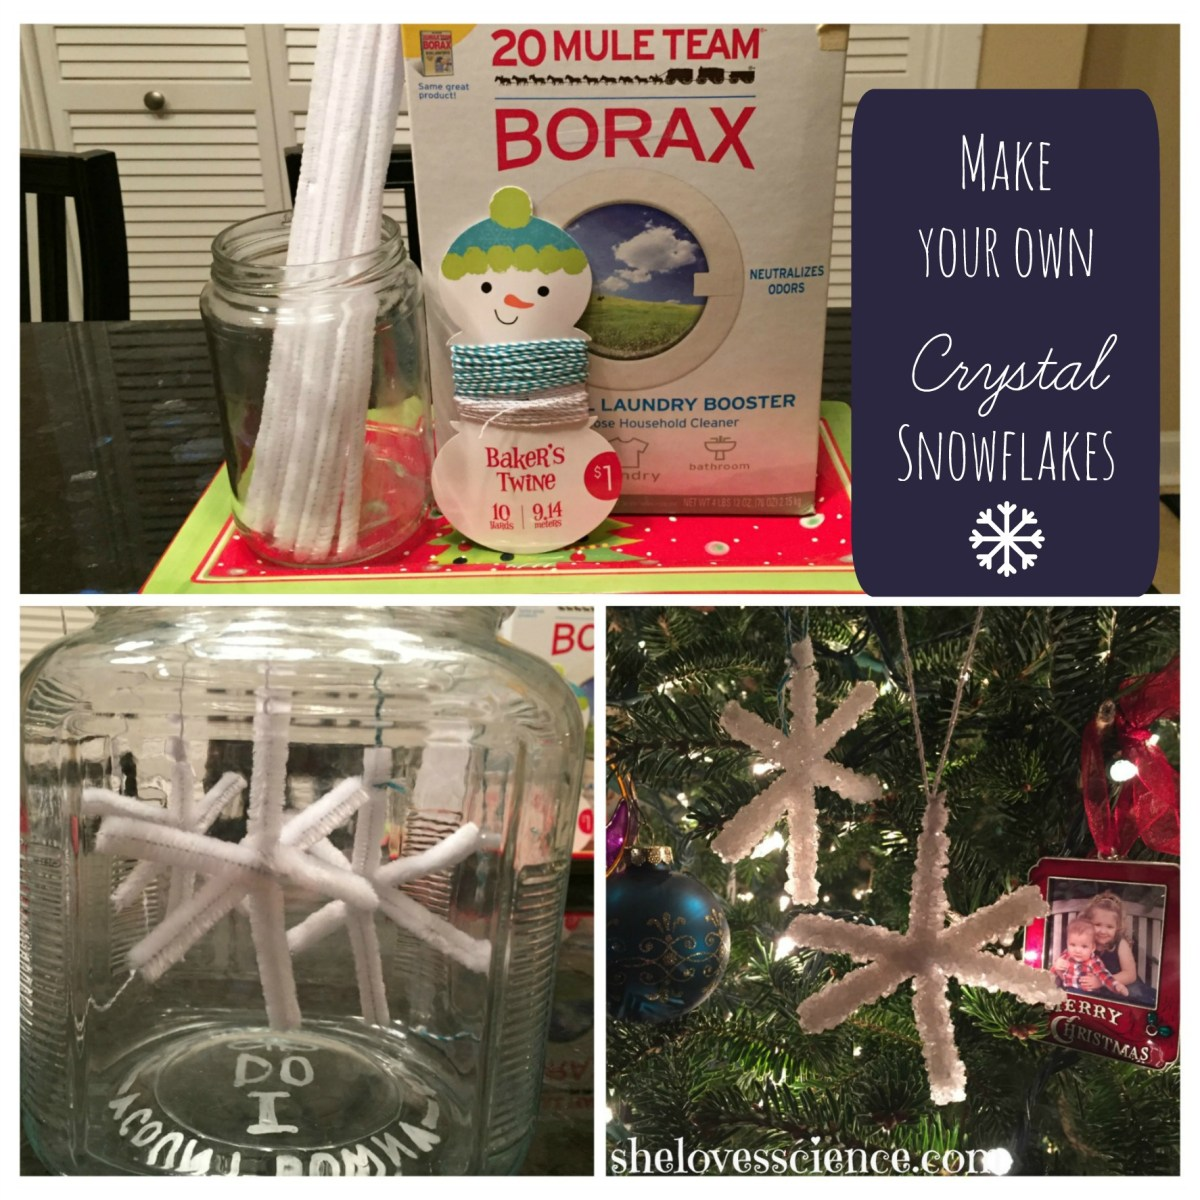 Crystal Snowflakes: Boredom buster!